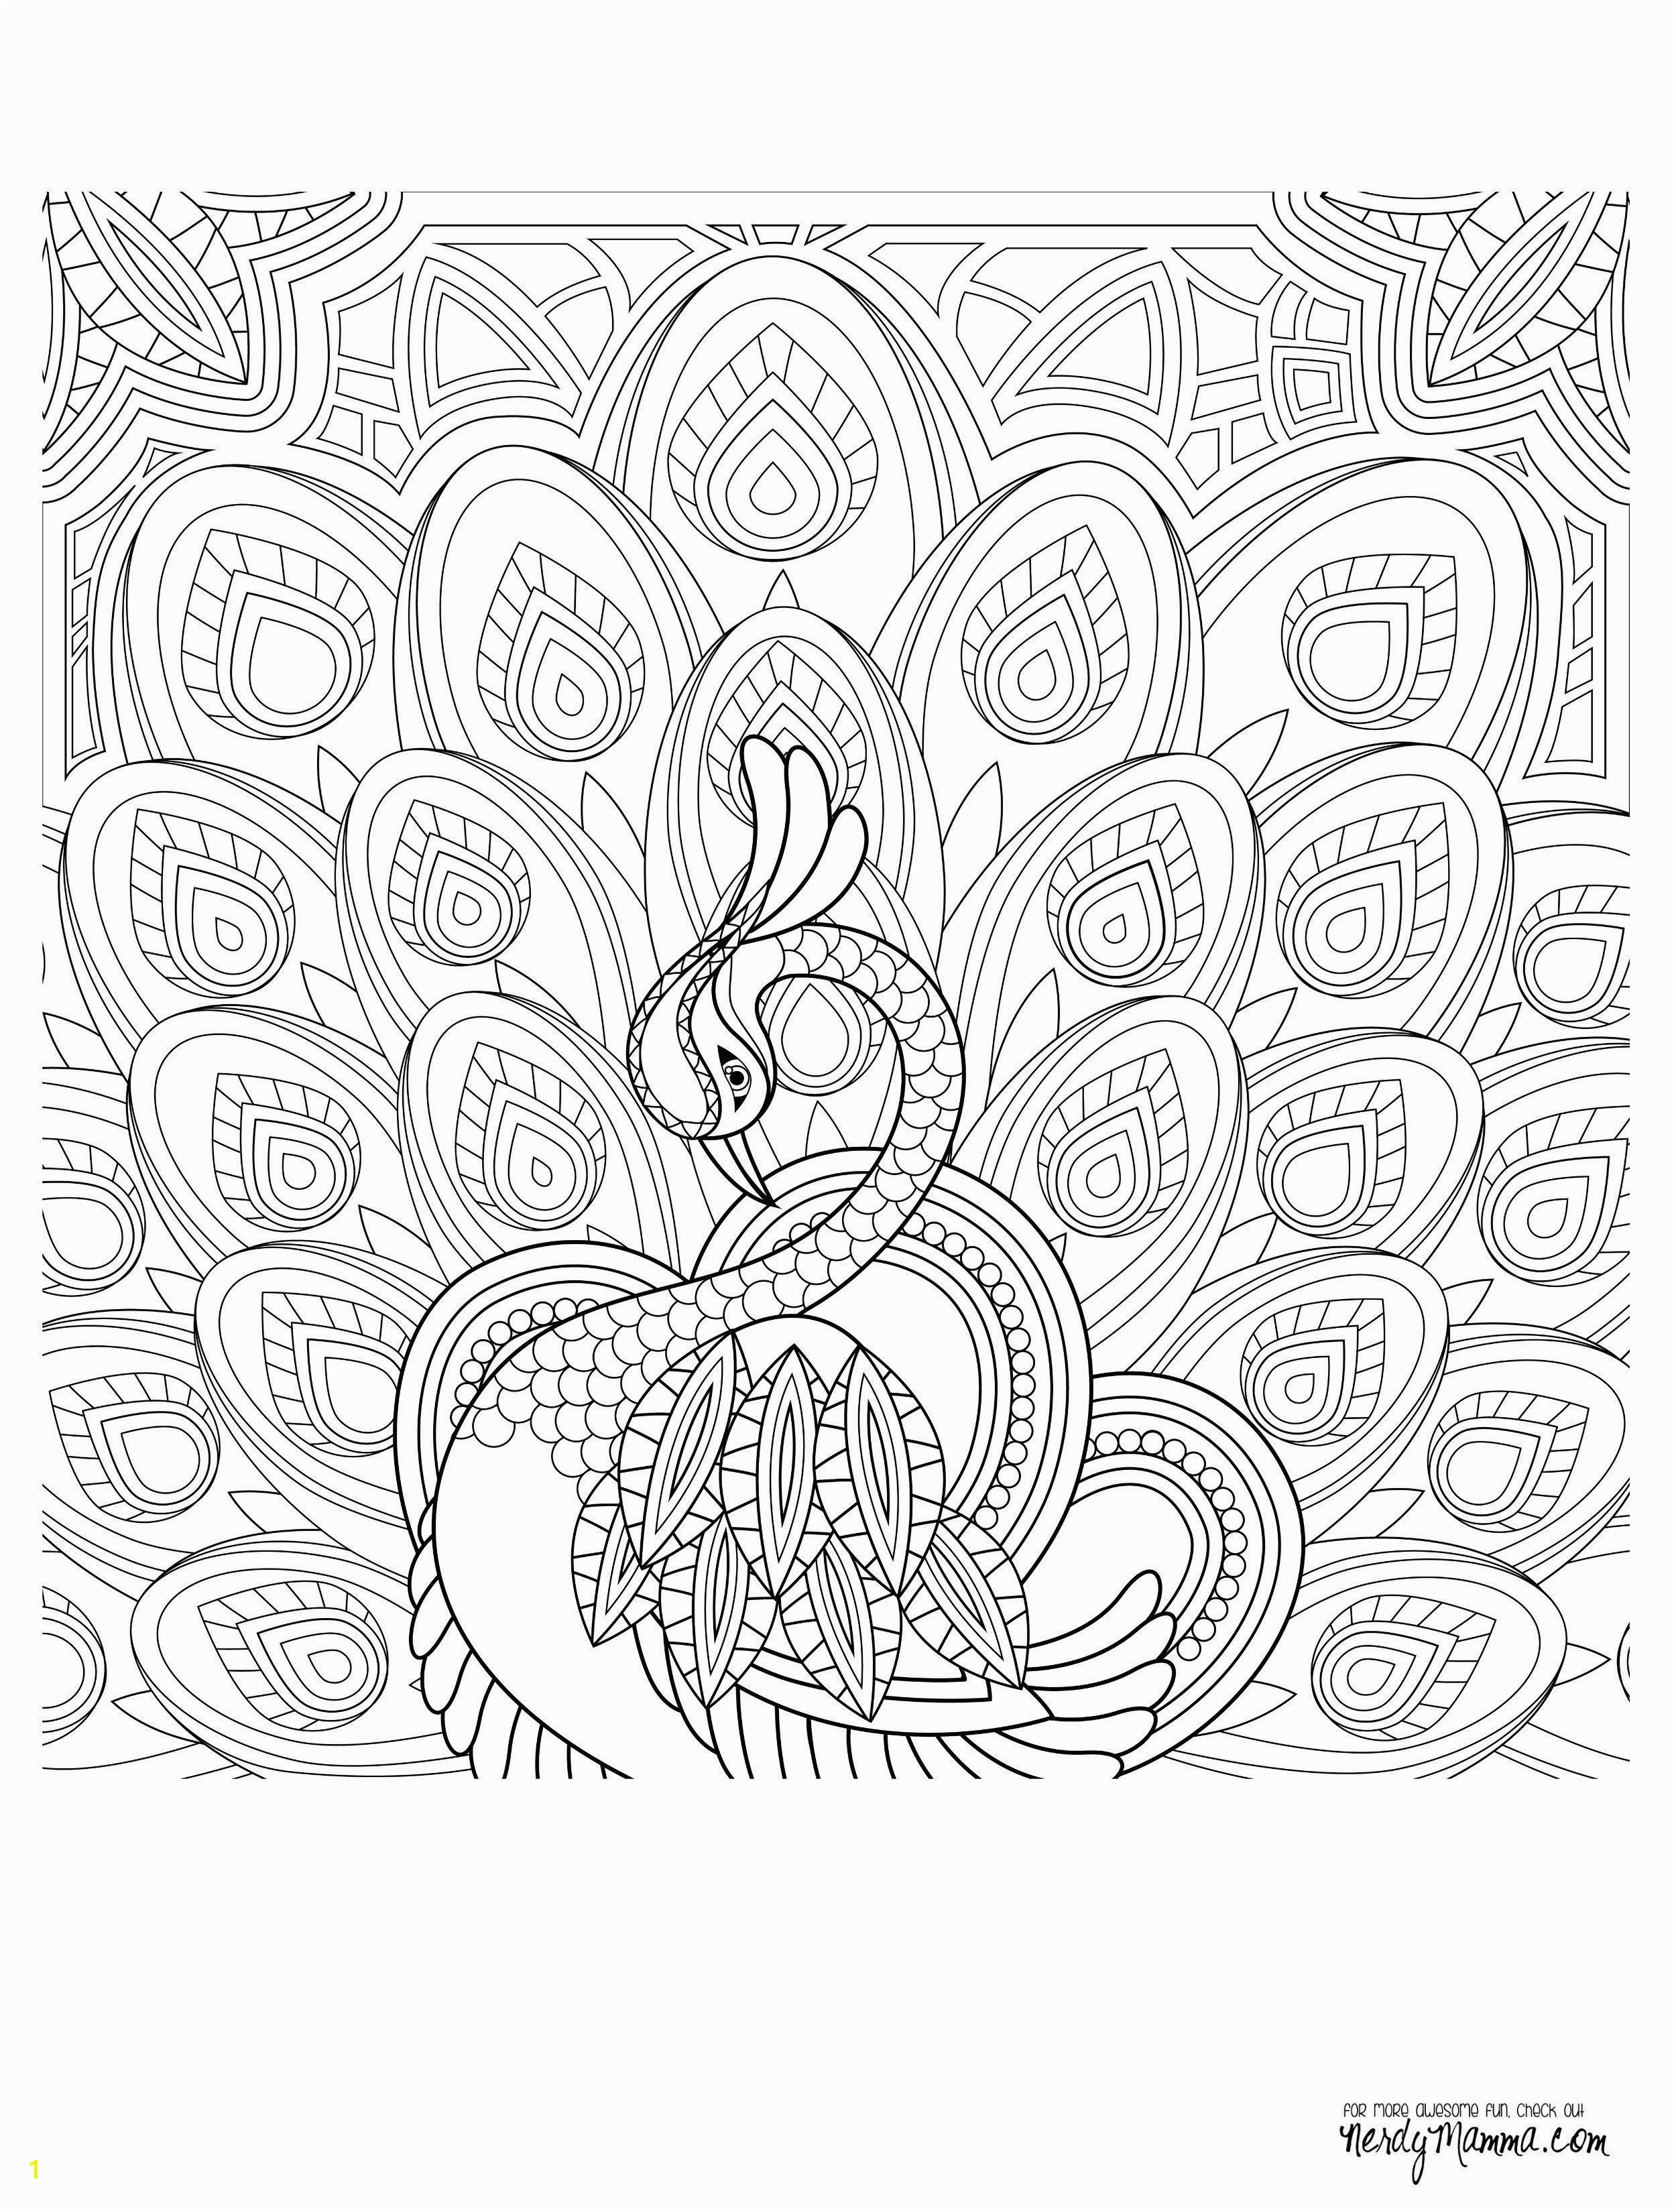 Shimmer and Shine Printable Coloring Pages Beautiful Printable Instructive Nick Jr Coloring Pages Shimmer and Shine